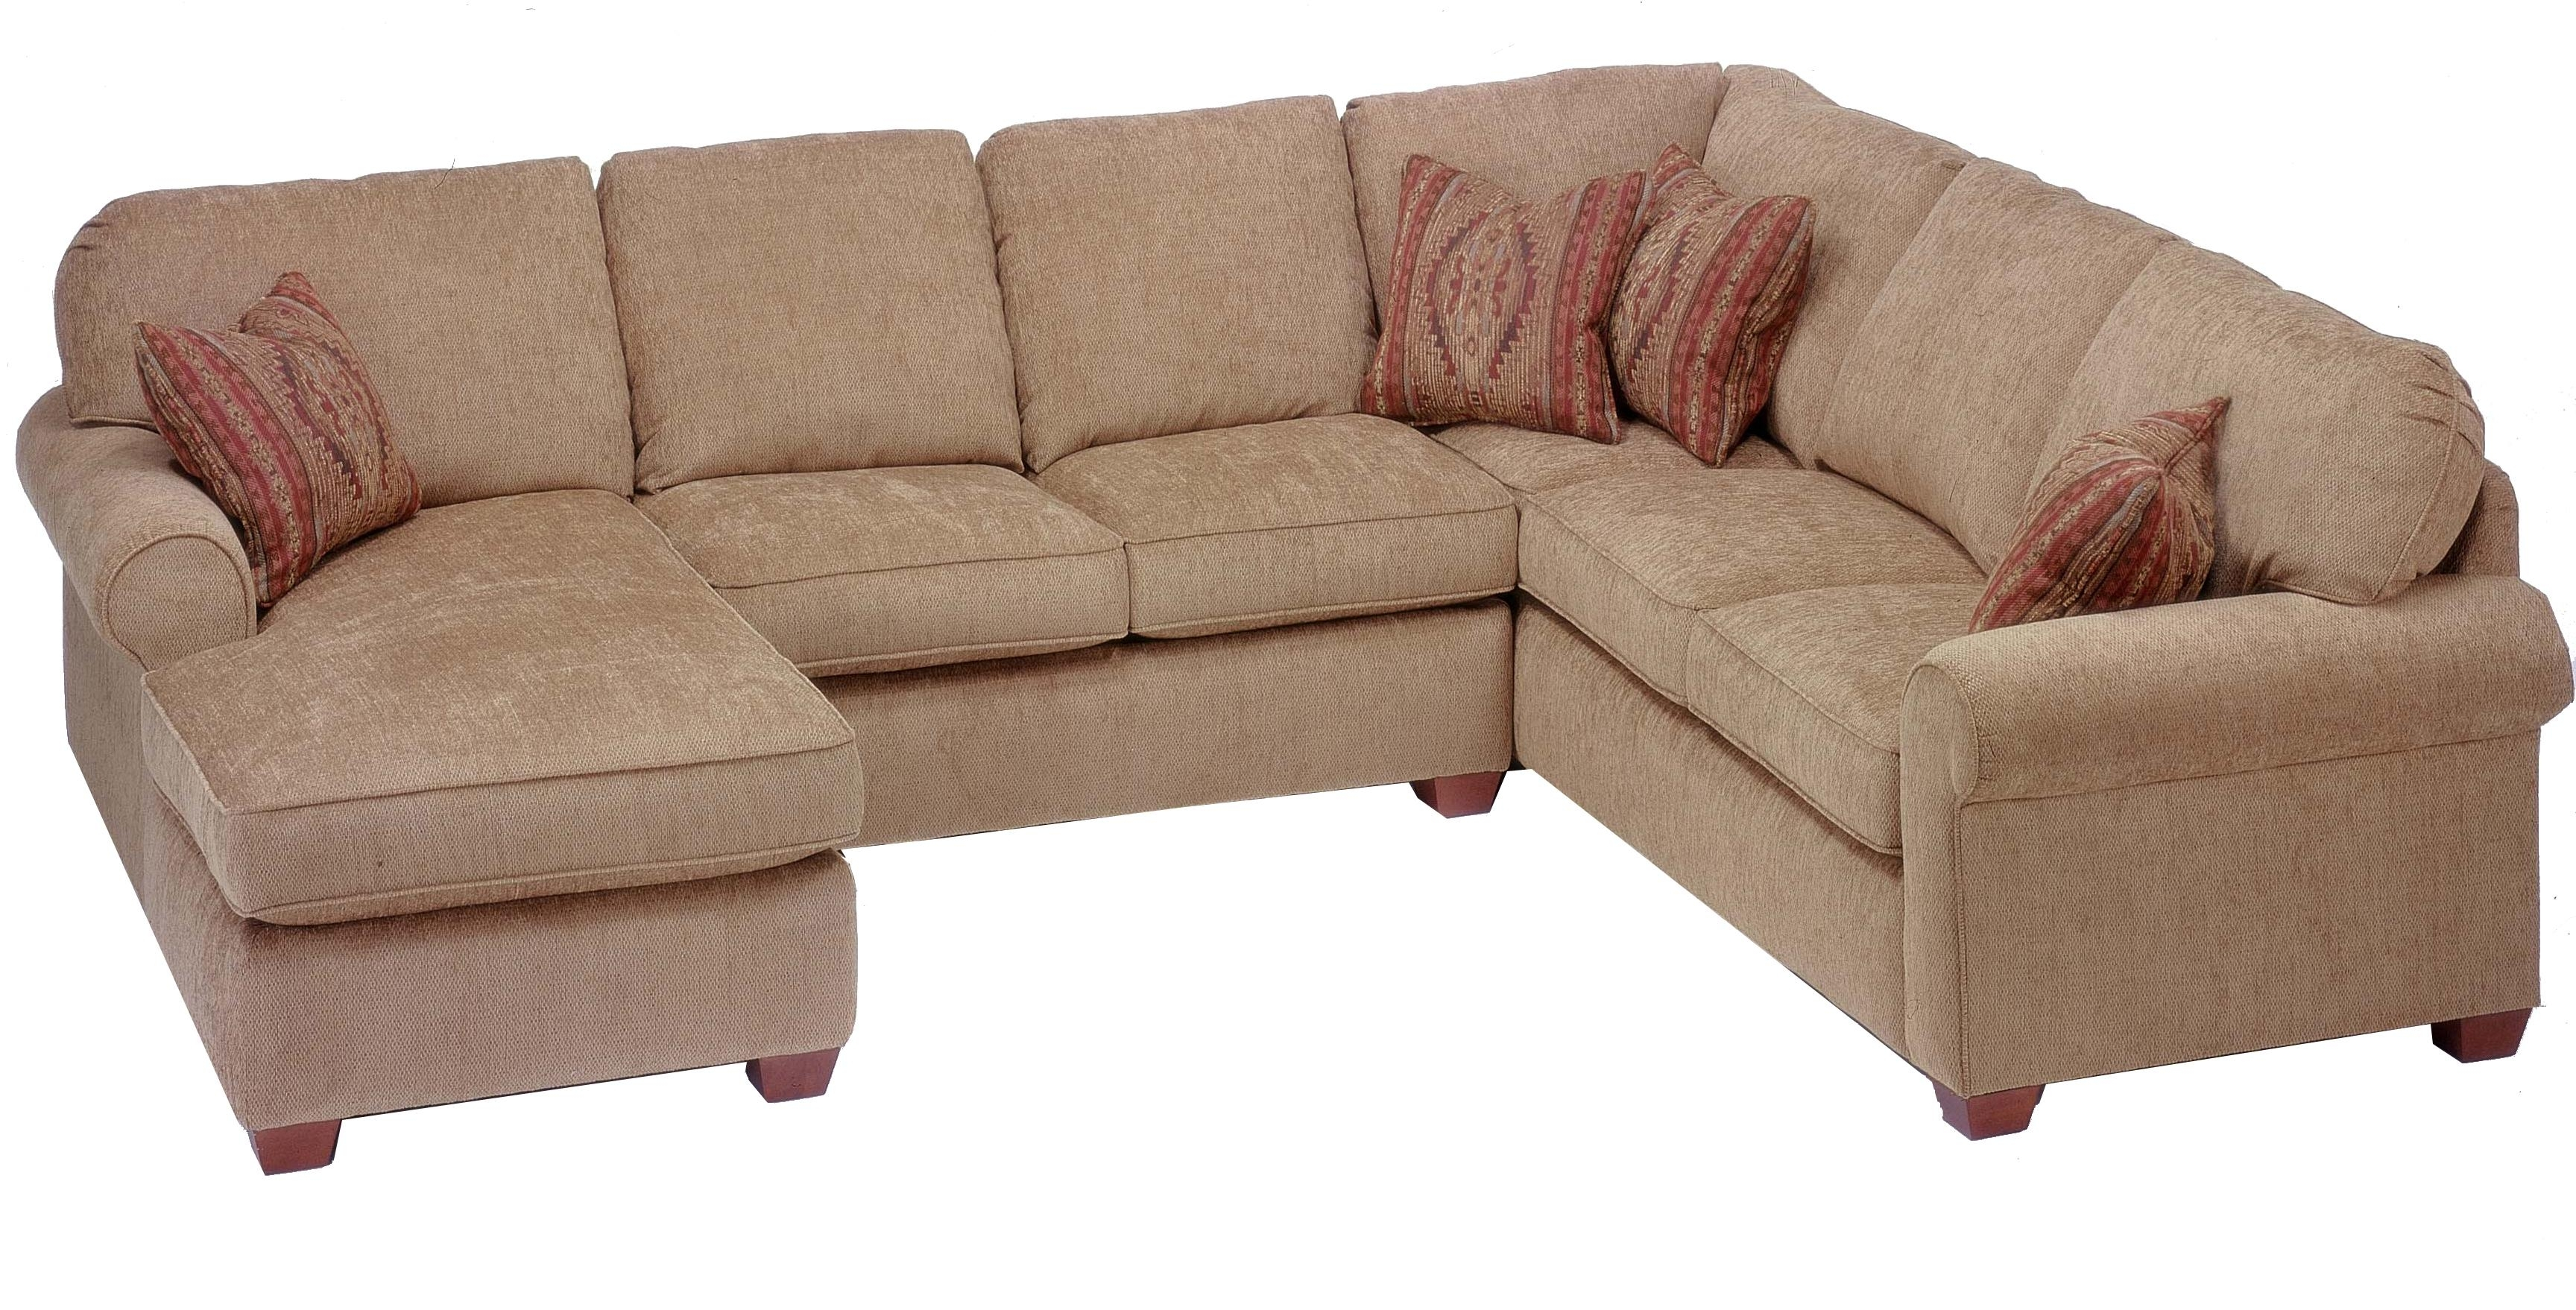 Flexsteel Thornton 3 Piece Sectional With Chaise – Ahfa – Sofa Regarding Meyer 3 Piece Sectionals With Laf Chaise (Image 9 of 25)